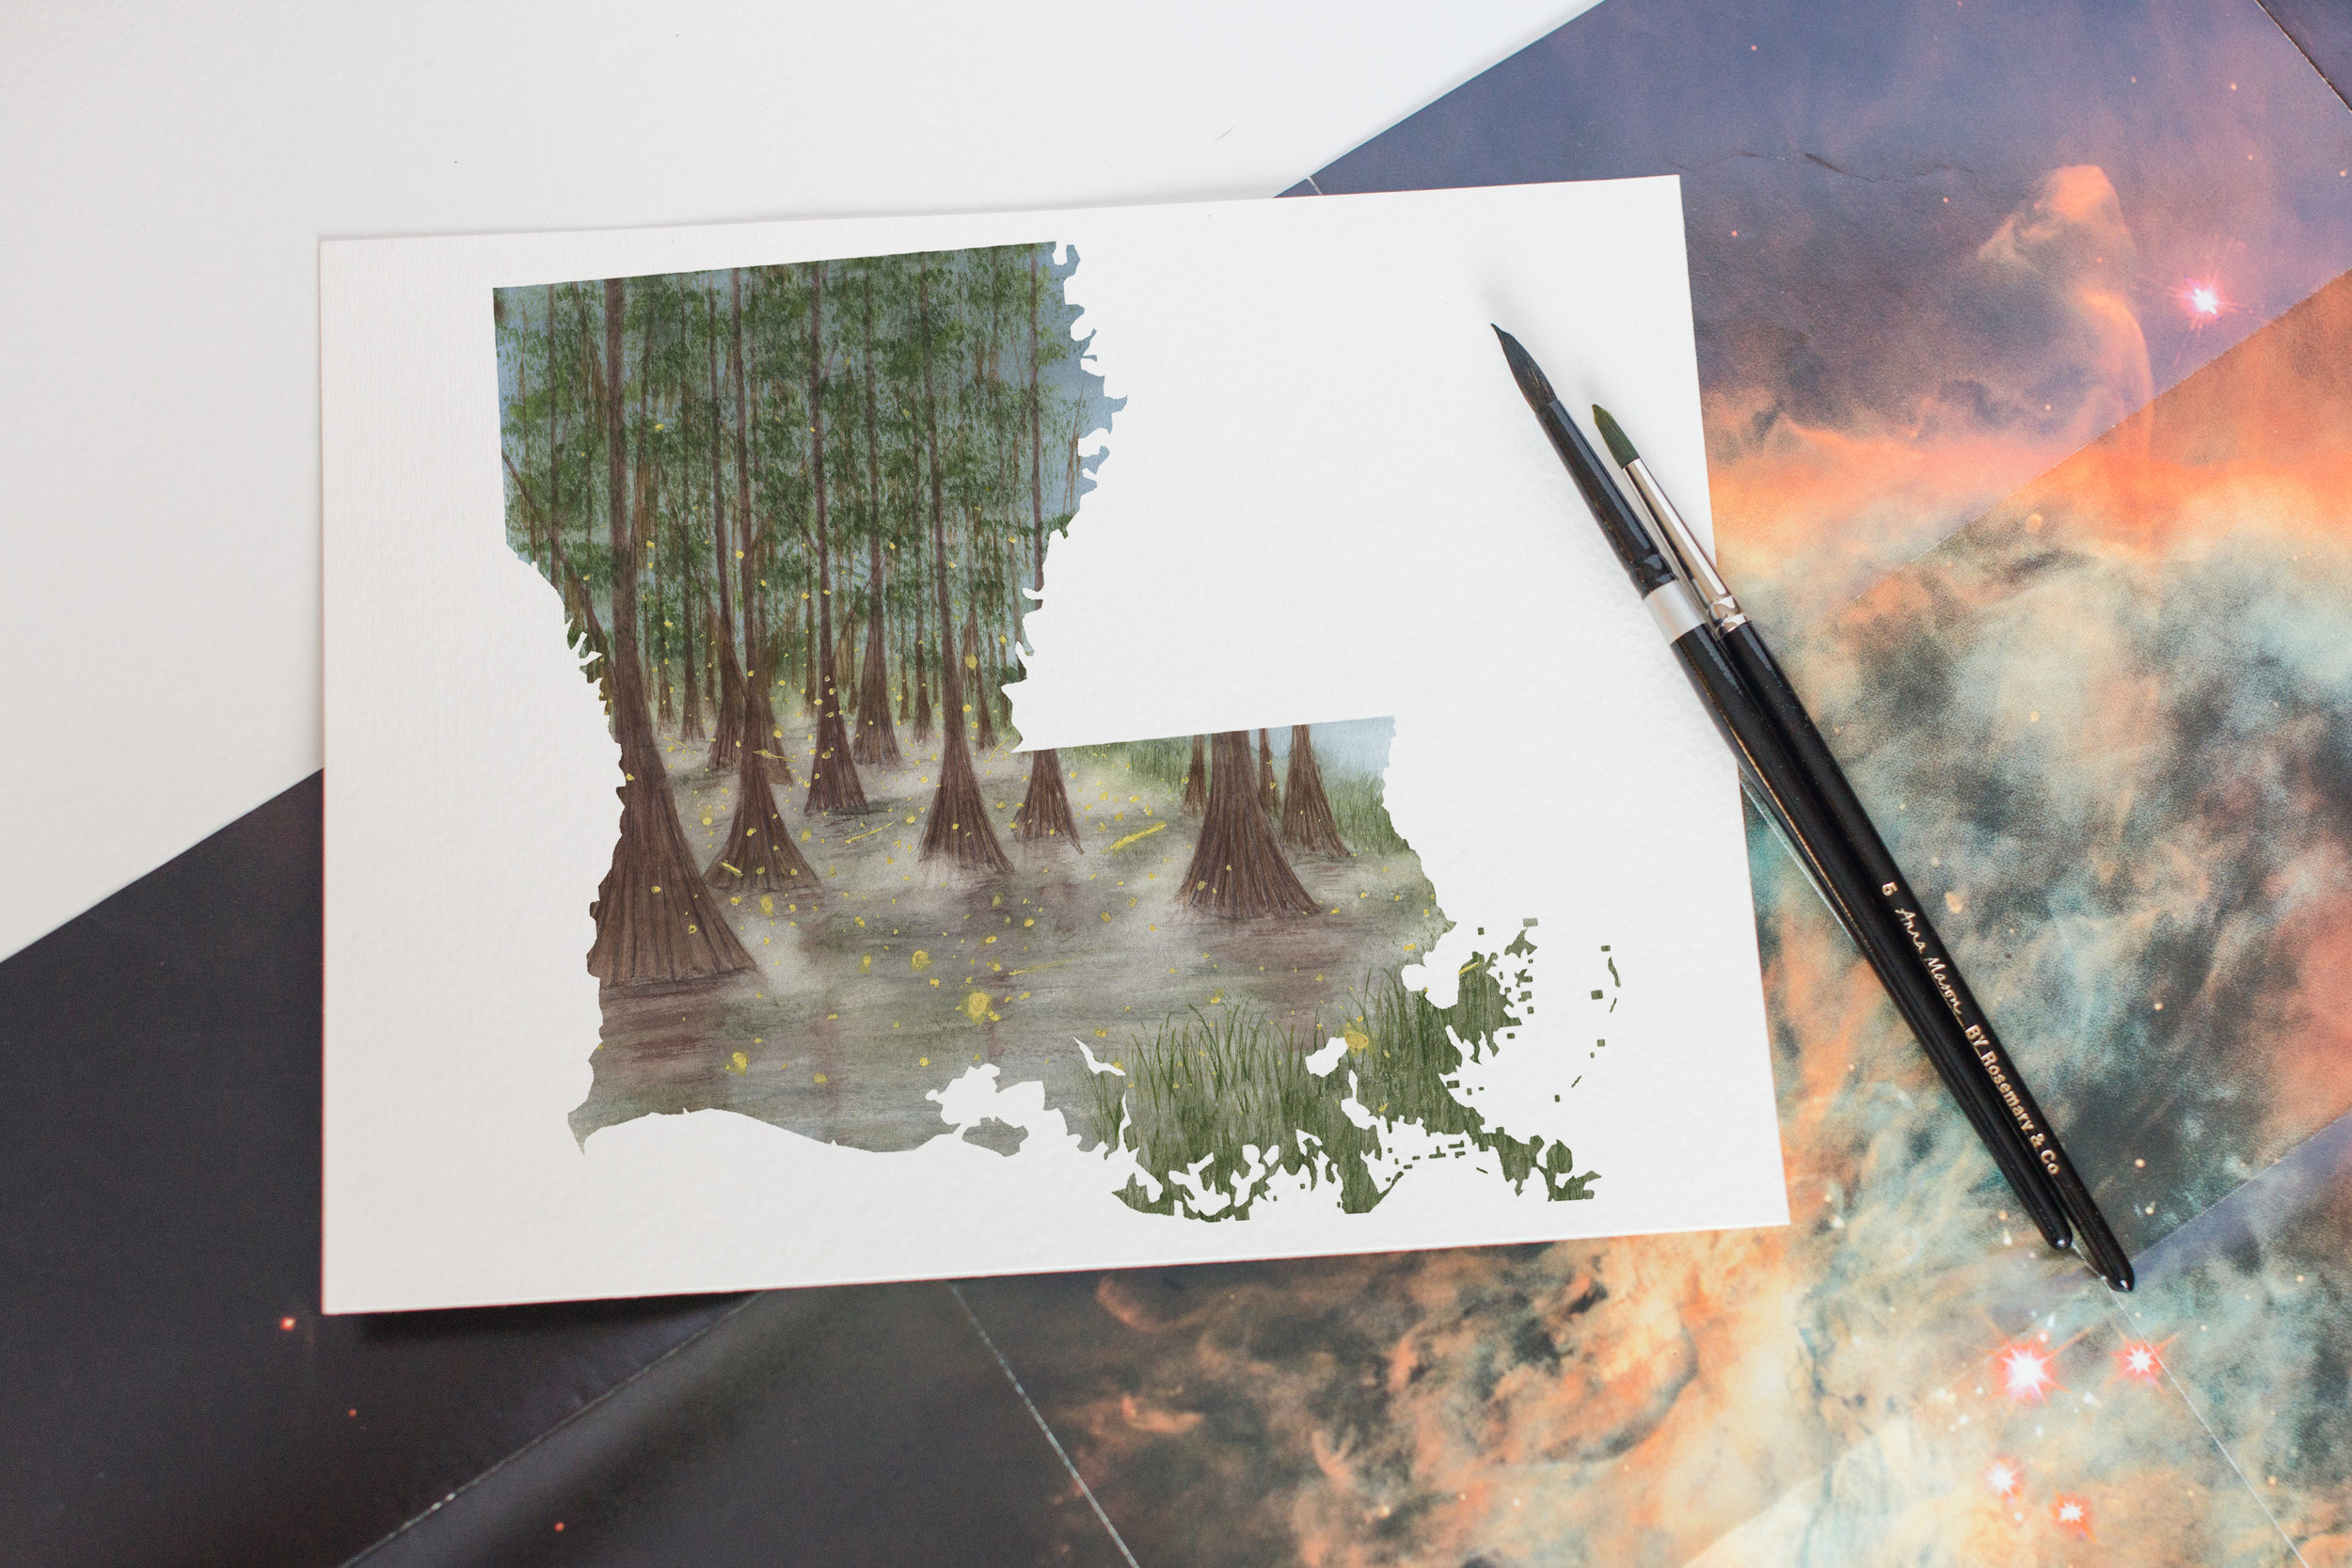 The inspiration from Elizabeth stated with a scene from the princess and the frog. Then looking through lots from Louisiana Bayou photos to build this scene.